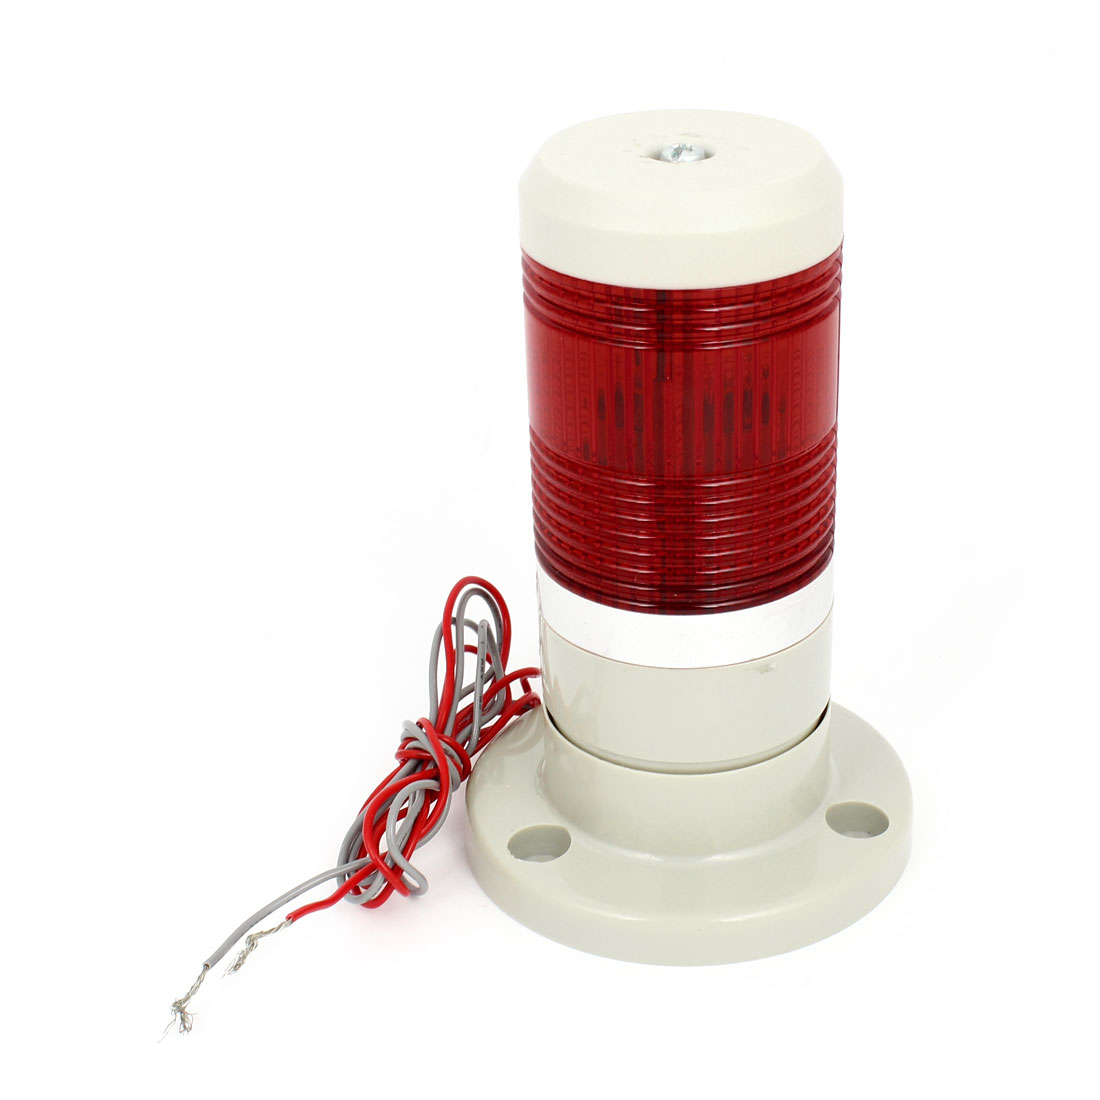 Red LED Industrial Signal Tower Safety Stack Alarm Light Bulb AC 220V